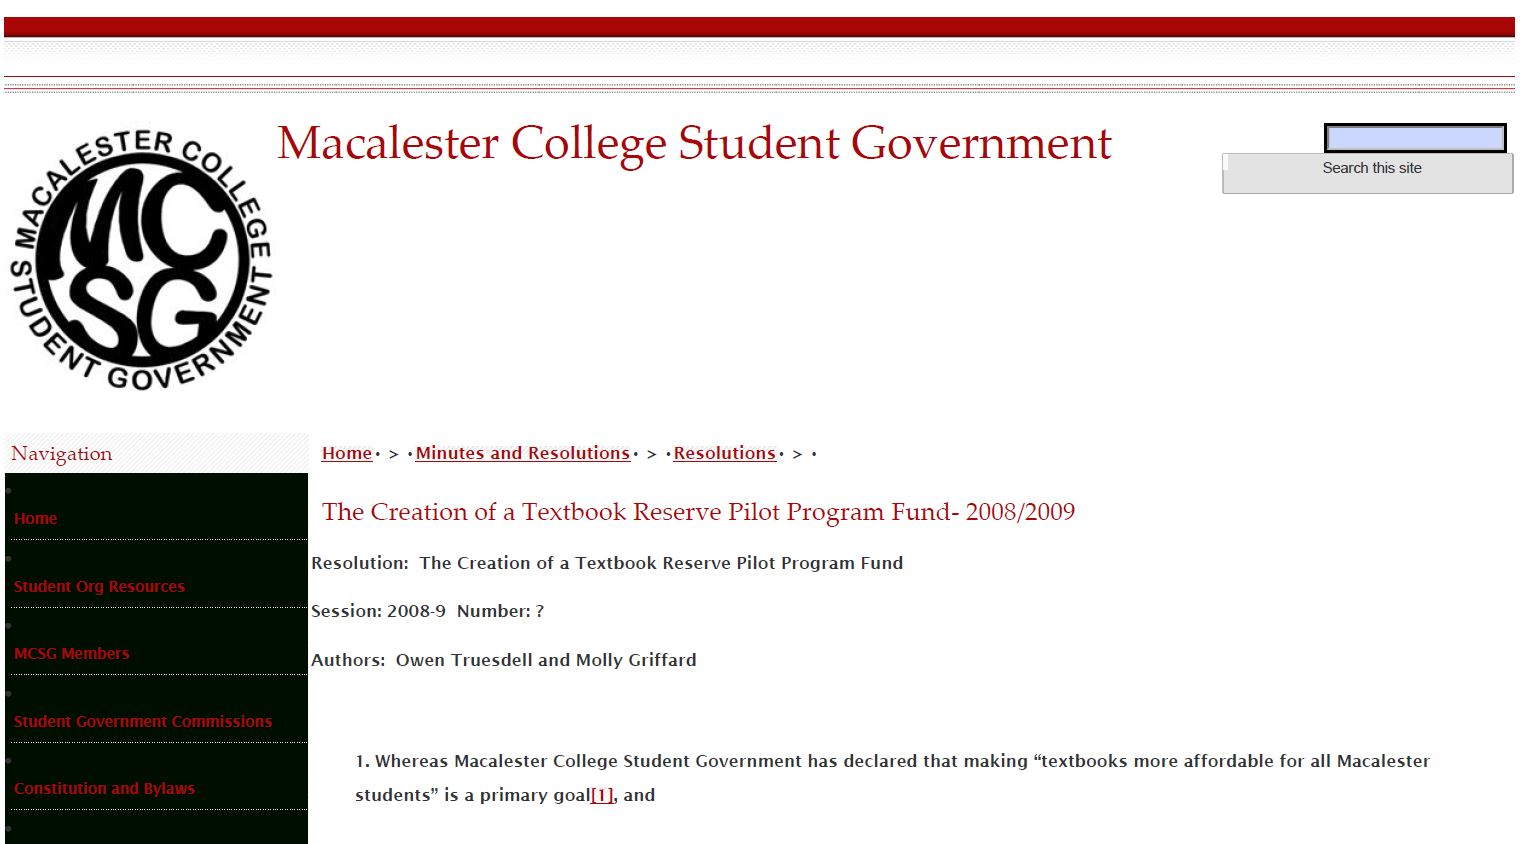 Creation of Textbook Reserve Pilot Program Fund